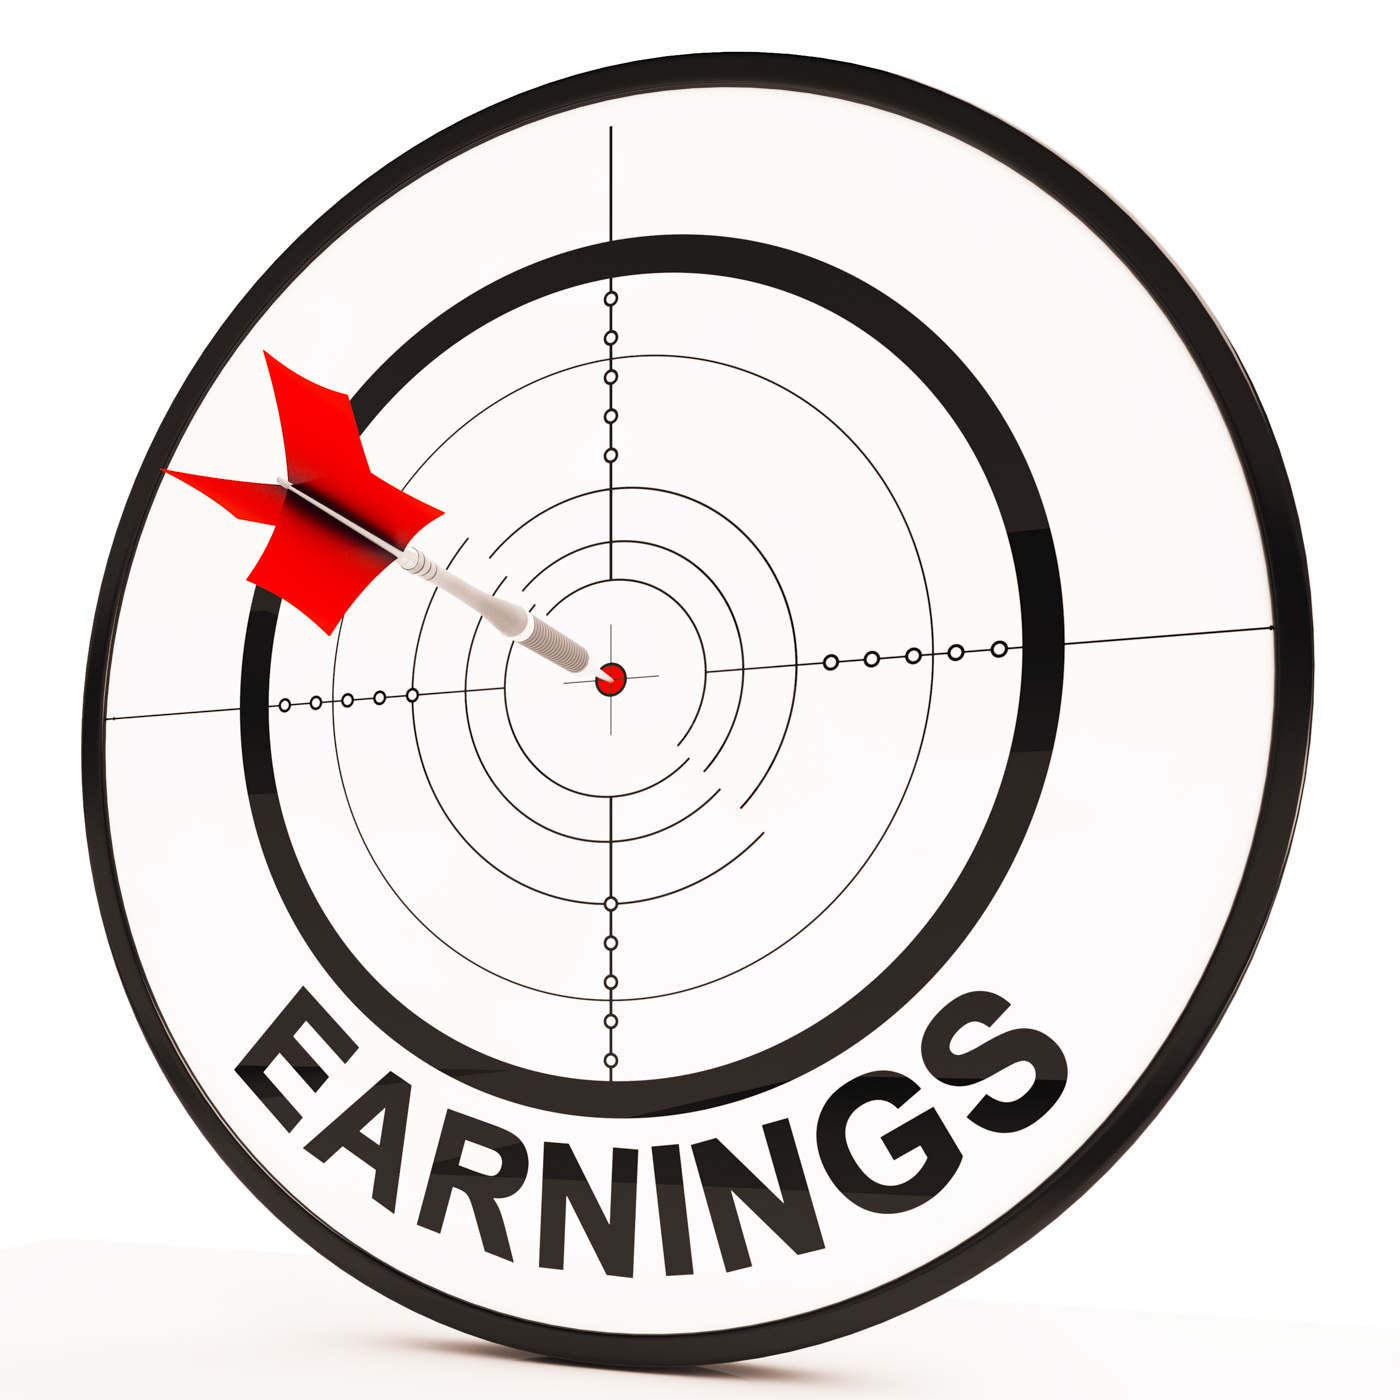 Earnings Shows Prosperity, Career, Revenue And Income, Career, Dividends, Earn, Employment, HQ Photo